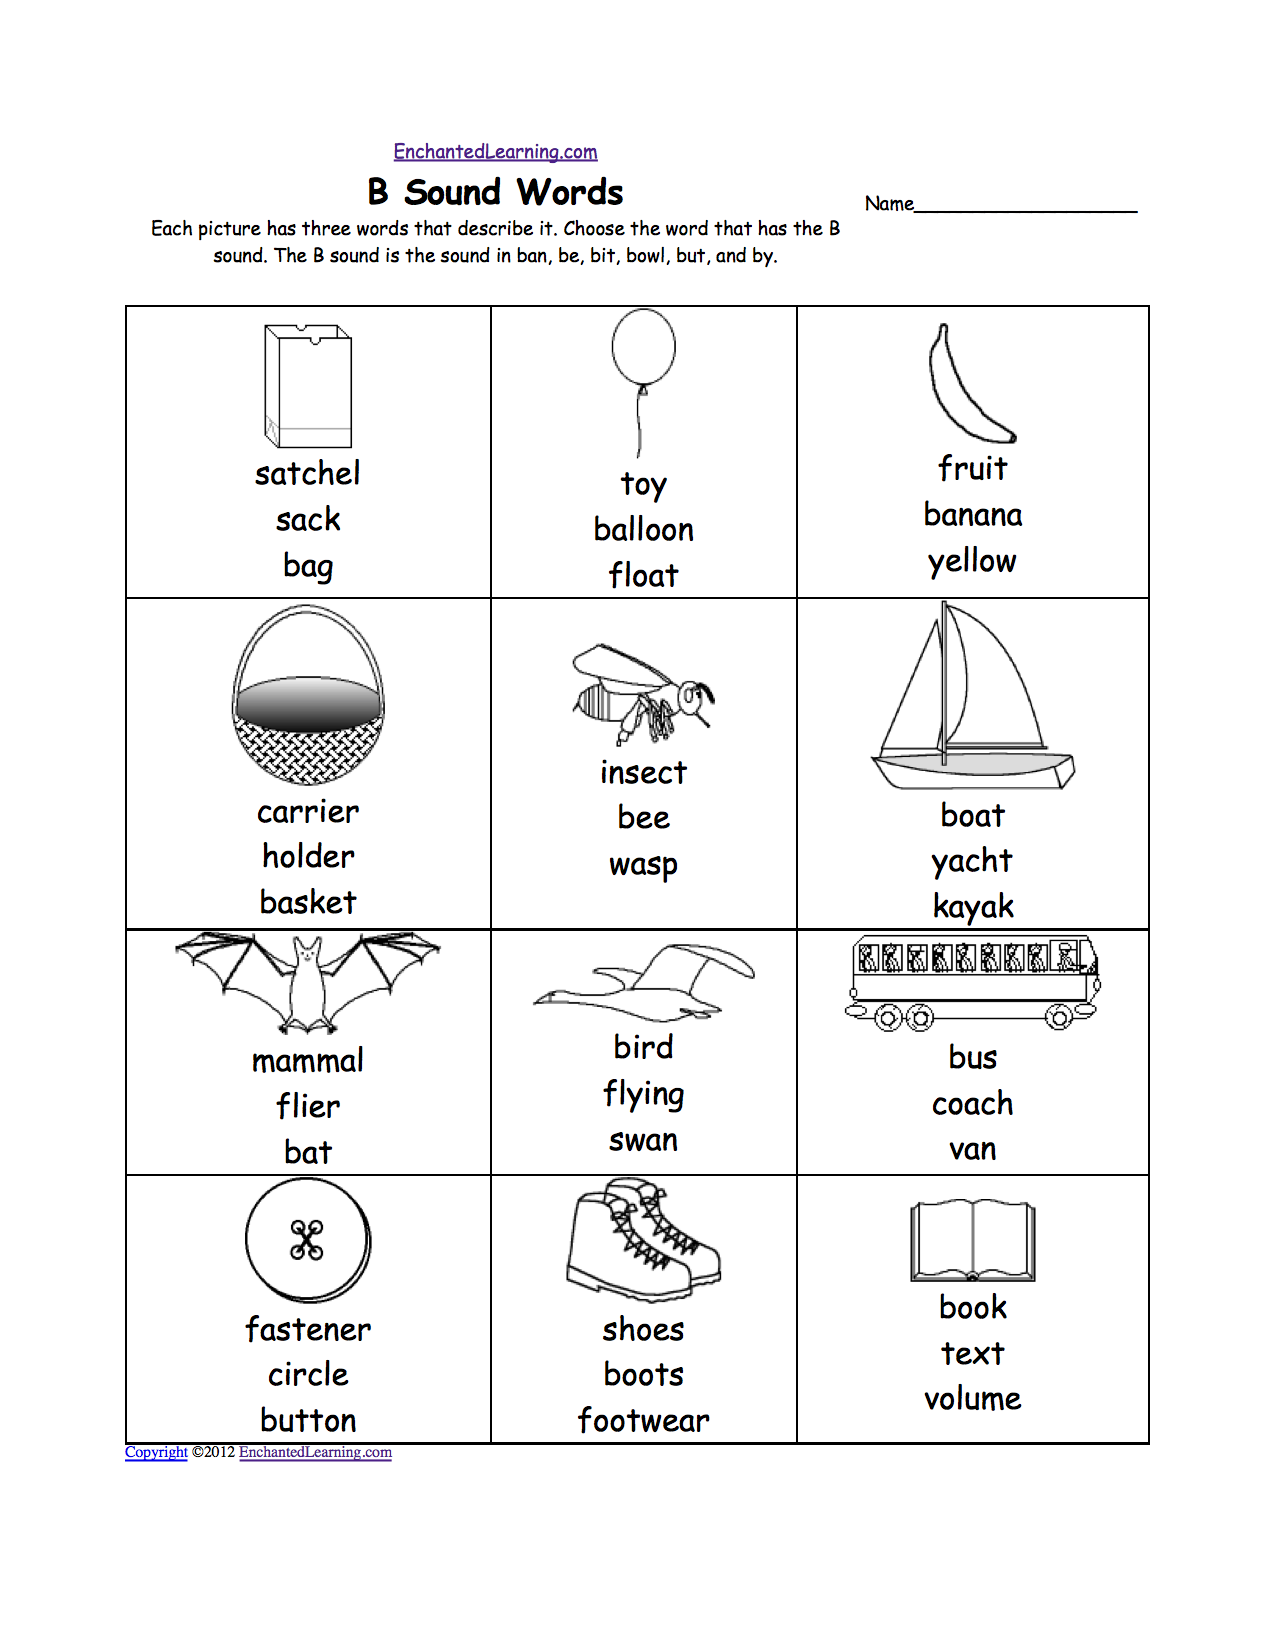 Proatmealus  Marvelous Phonics Worksheets Multiple Choice Worksheets To Print  With Outstanding Quotbquot Sound Phonics Worksheet Multiple Choice Each Picture Has Three Words That Describe It Choose The Word That Has A Quotbquot Sound The Quotbquot Sound Is The Sound  With Appealing Worksheet On Simplifying Radicals Also Addition Worksheets For Kindergarten Free Printables In Addition Median Mode And Range Worksheets And Th Grade Grammar Worksheets As Well As Social Studies Worksheets Th Grade Additionally Hyphens Worksheet From Enchantedlearningcom With Proatmealus  Outstanding Phonics Worksheets Multiple Choice Worksheets To Print  With Appealing Quotbquot Sound Phonics Worksheet Multiple Choice Each Picture Has Three Words That Describe It Choose The Word That Has A Quotbquot Sound The Quotbquot Sound Is The Sound  And Marvelous Worksheet On Simplifying Radicals Also Addition Worksheets For Kindergarten Free Printables In Addition Median Mode And Range Worksheets From Enchantedlearningcom